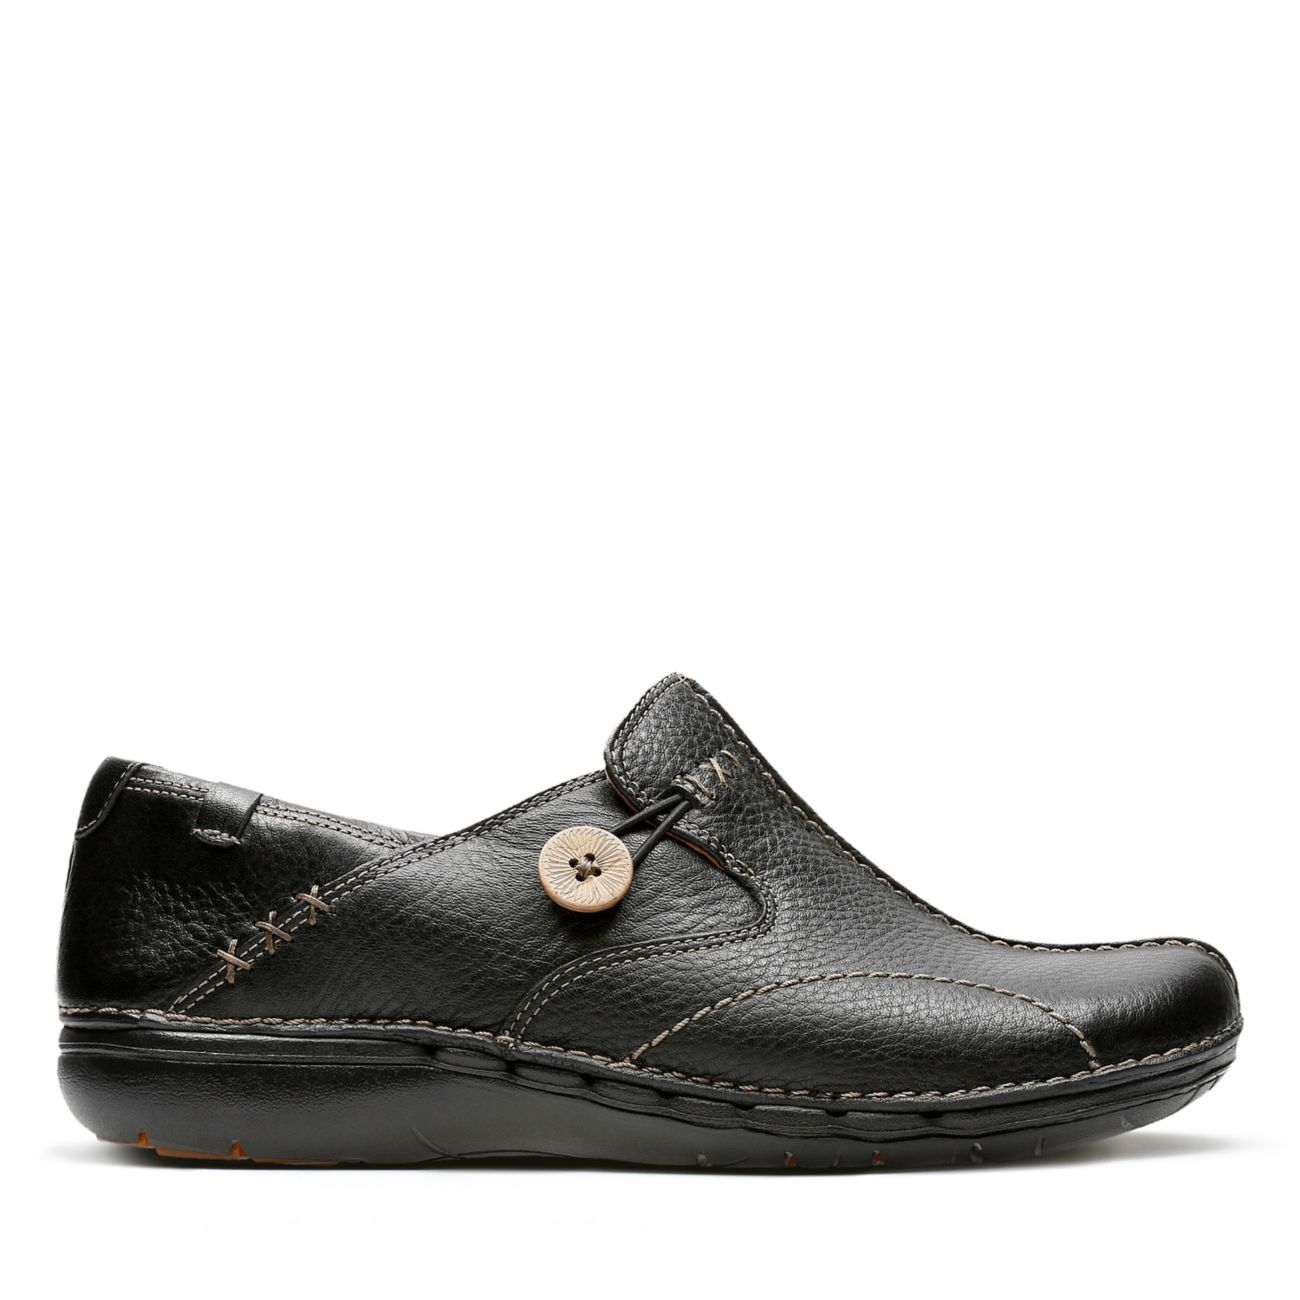 0aa6fc6885f Nurses Shoes | Best Shoes for Nurses in Black Leather | Clarks